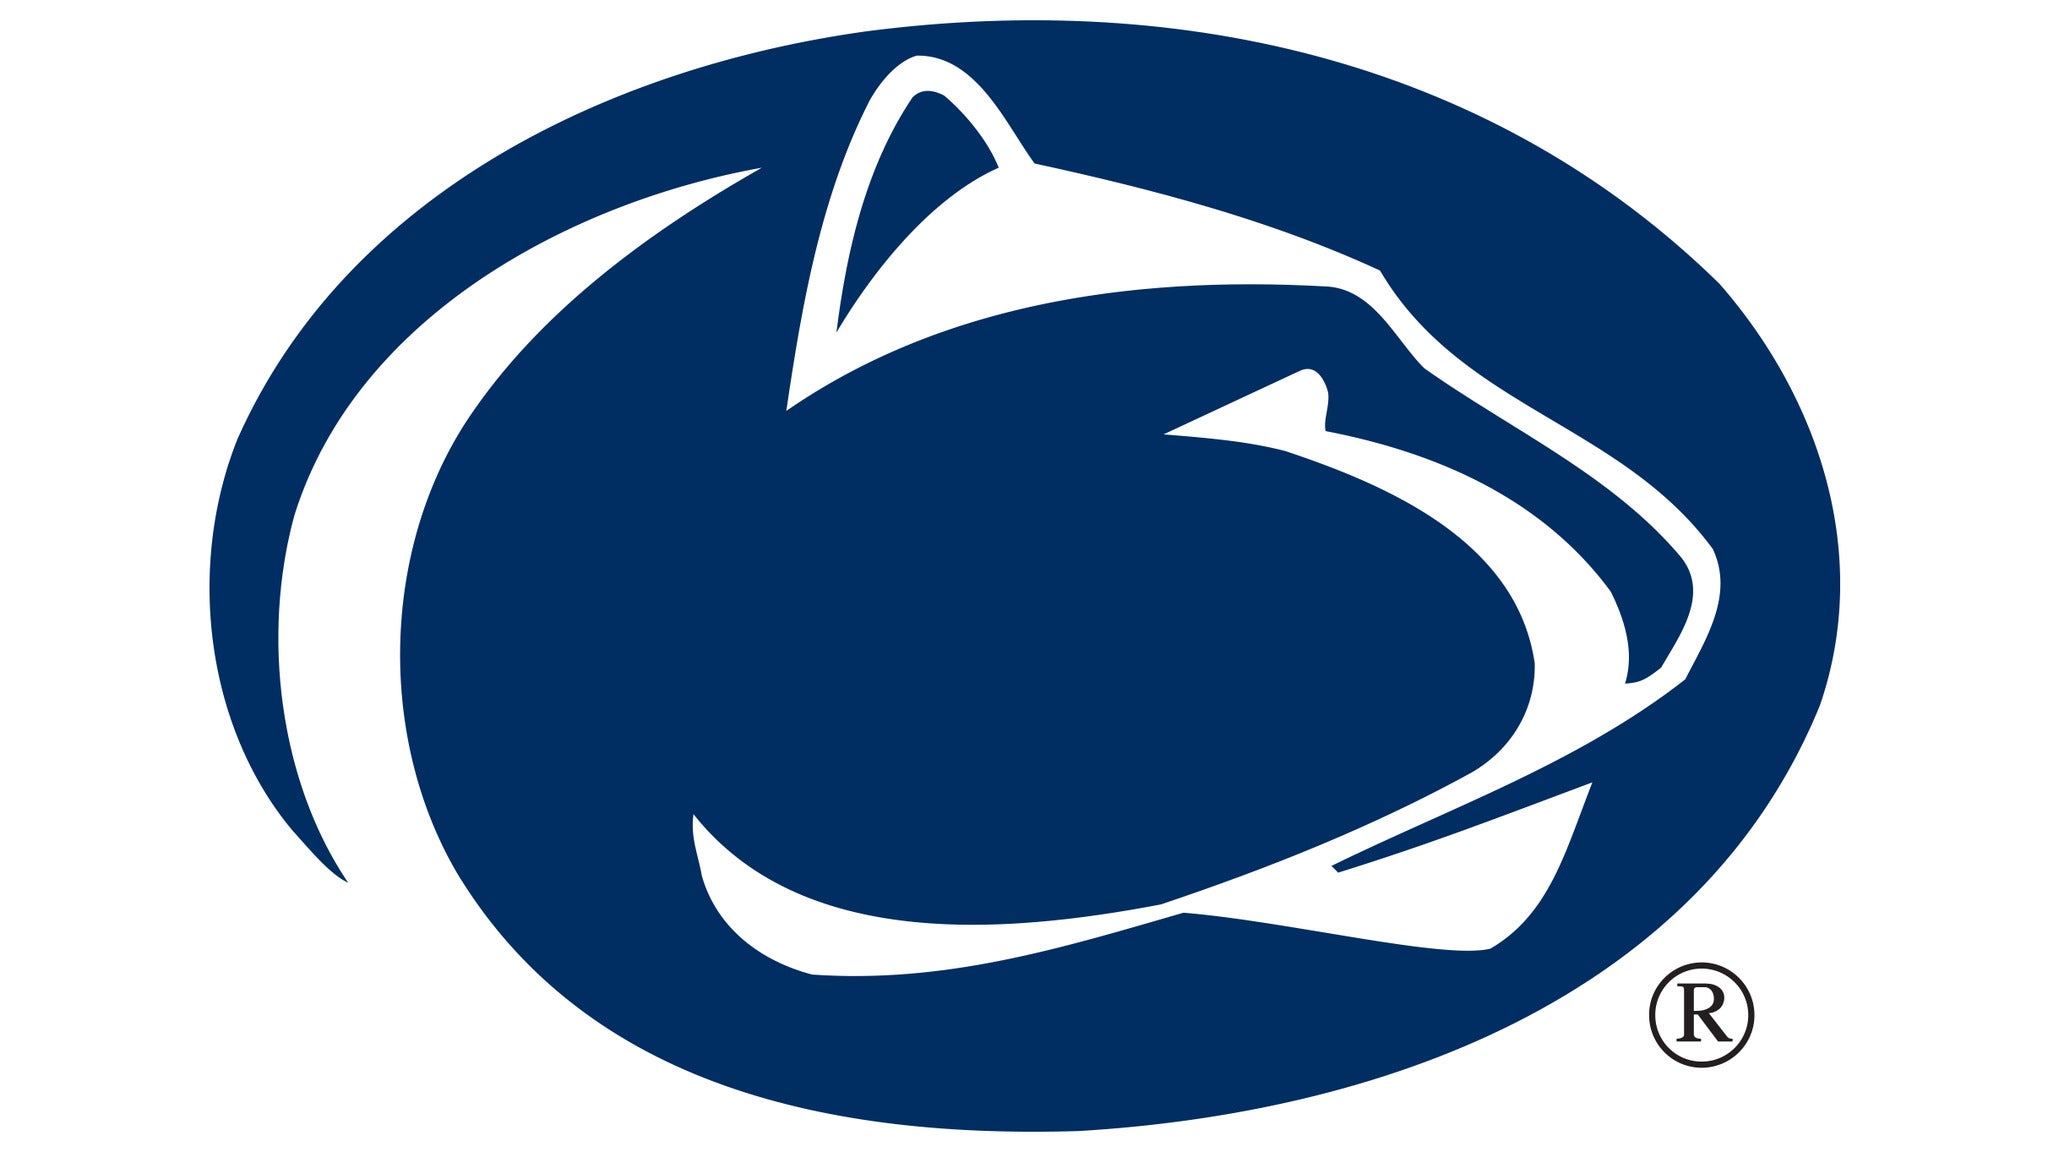 Penn State Nittany Lion Men's Hockey vs. Robert Morris University Colonials Hockey